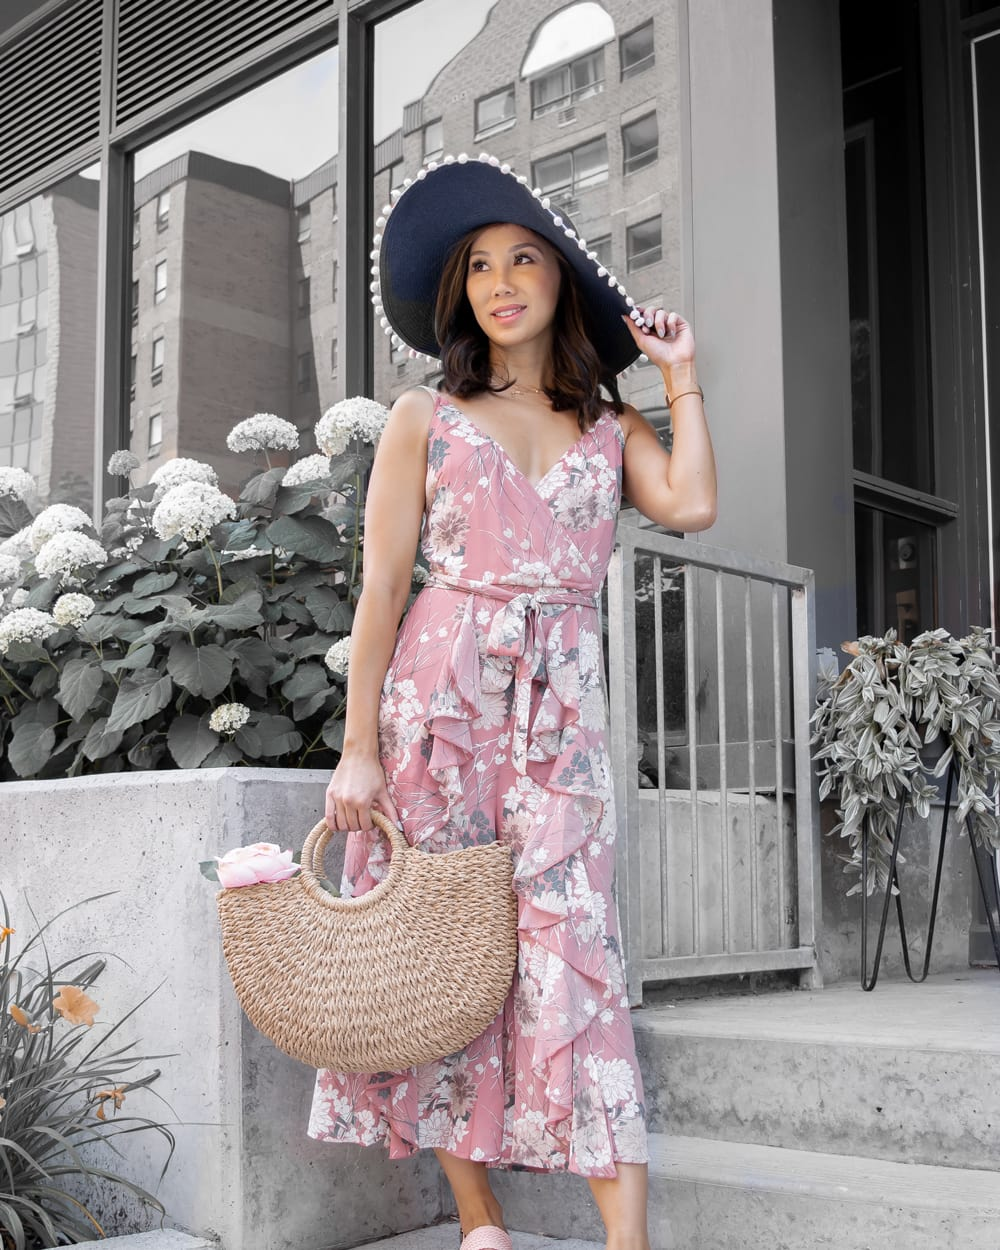 Summer outfits ideas for a weekend getaway - floral jumpsuit, basket back, floppy hat